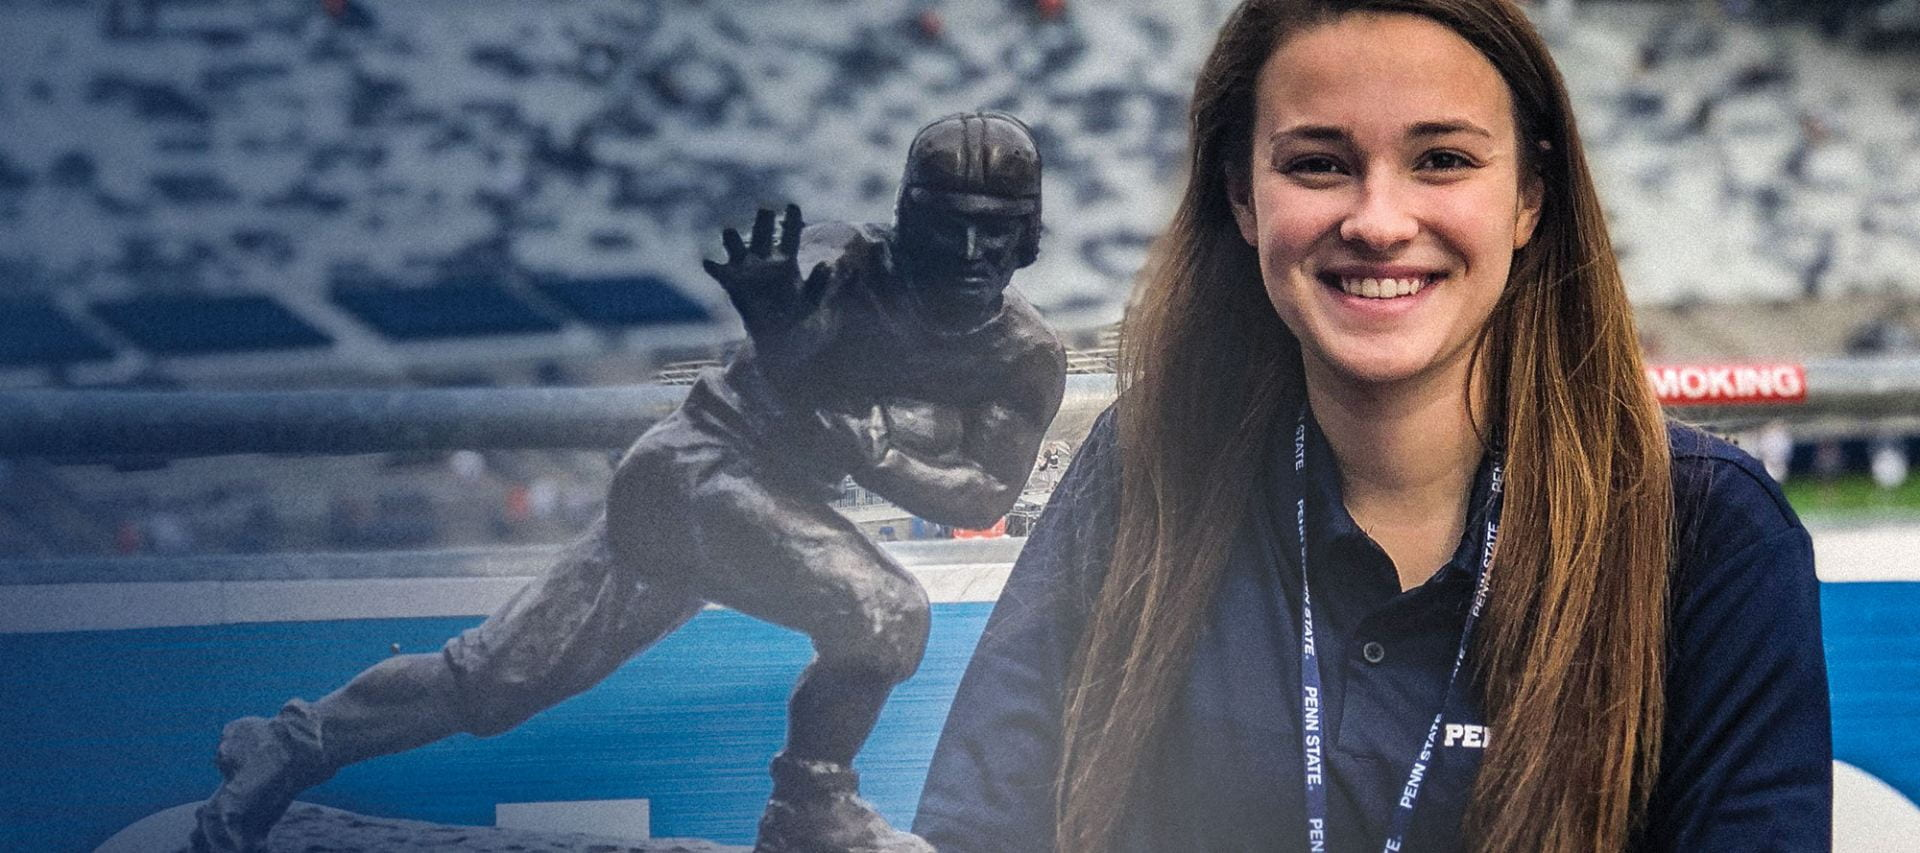 Penn Stater, Taylor Machuga standing with the Heisman Trophy at Beaver Stadium.